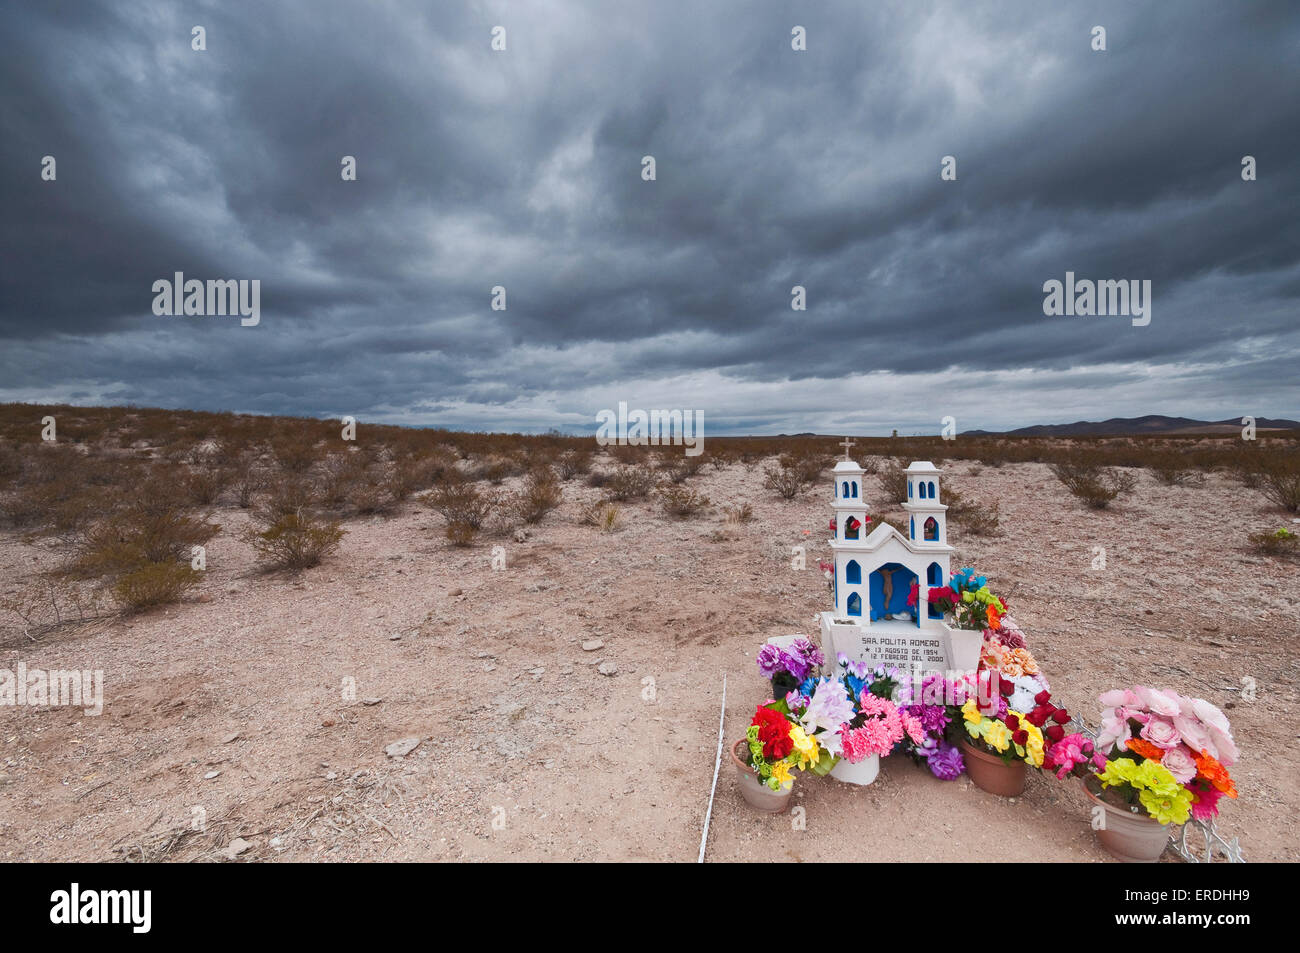 Roadside shrine at car accident site in Yucca Plains, Chihuahuan Desert, near Columbus, New Mexico, USA - Stock Image